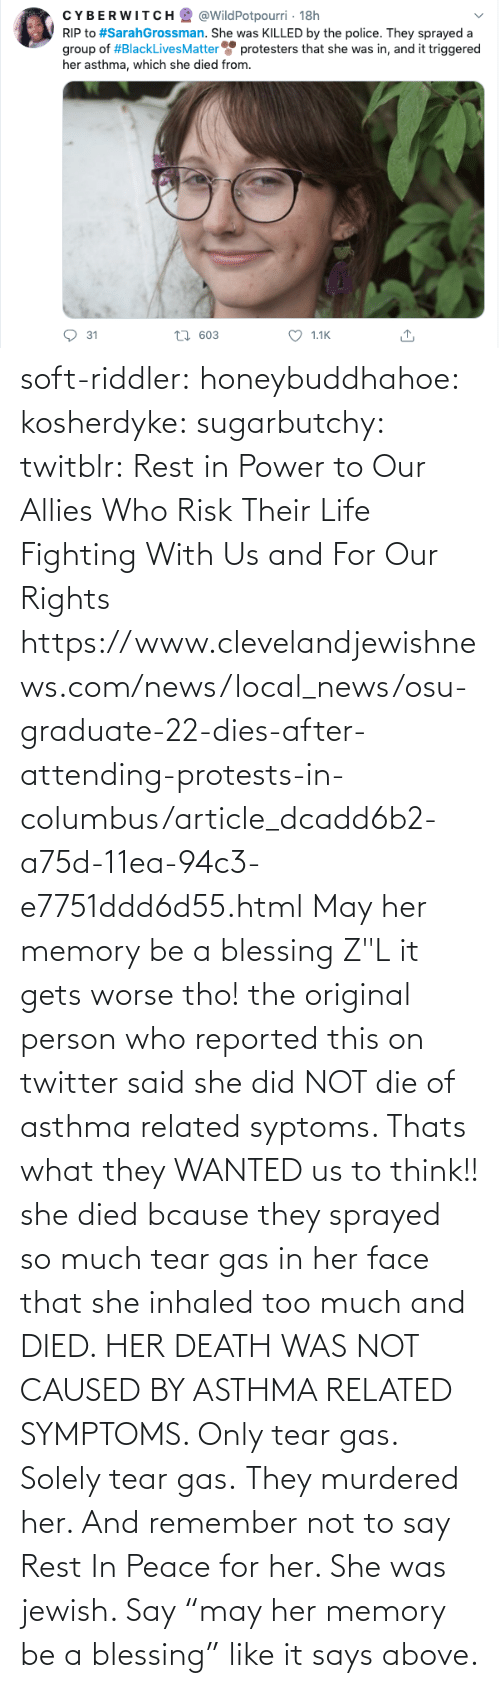 "Death: soft-riddler:  honeybuddhahoe:  kosherdyke:  sugarbutchy:  twitblr: Rest in Power to Our Allies Who Risk Their Life Fighting With Us and For Our Rights https://www.clevelandjewishnews.com/news/local_news/osu-graduate-22-dies-after-attending-protests-in-columbus/article_dcadd6b2-a75d-11ea-94c3-e7751ddd6d55.html    May her memory be a blessing Z""L  it gets worse tho! the original person who reported this on twitter said she did NOT die of asthma related syptoms. Thats what they WANTED us to think!! she died bcause they sprayed so much tear gas in her face that she inhaled too much and DIED. HER DEATH WAS NOT CAUSED BY ASTHMA RELATED SYMPTOMS. Only tear gas. Solely tear gas. They murdered her.     And remember not to say Rest In Peace for her. She was jewish. Say ""may her memory be a blessing"" like it says above."